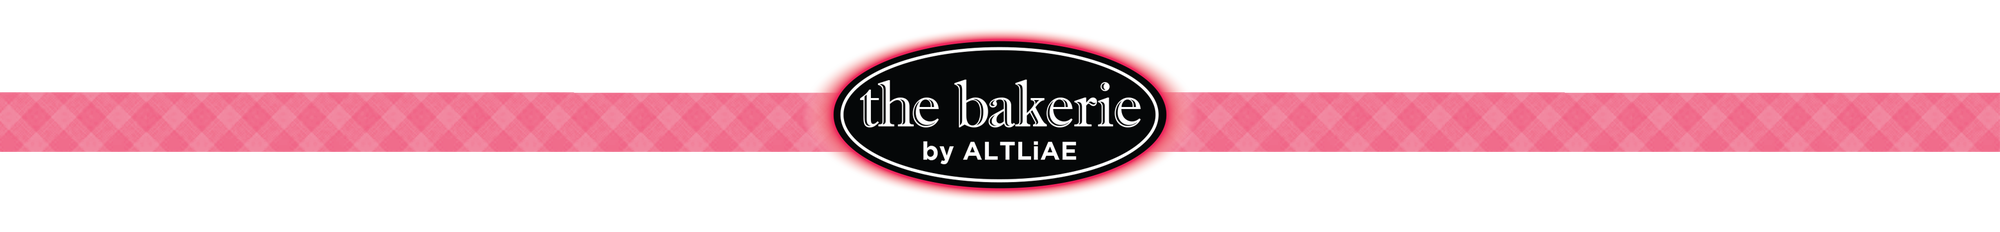 Welcome to The Bakerie by ALTLiAE